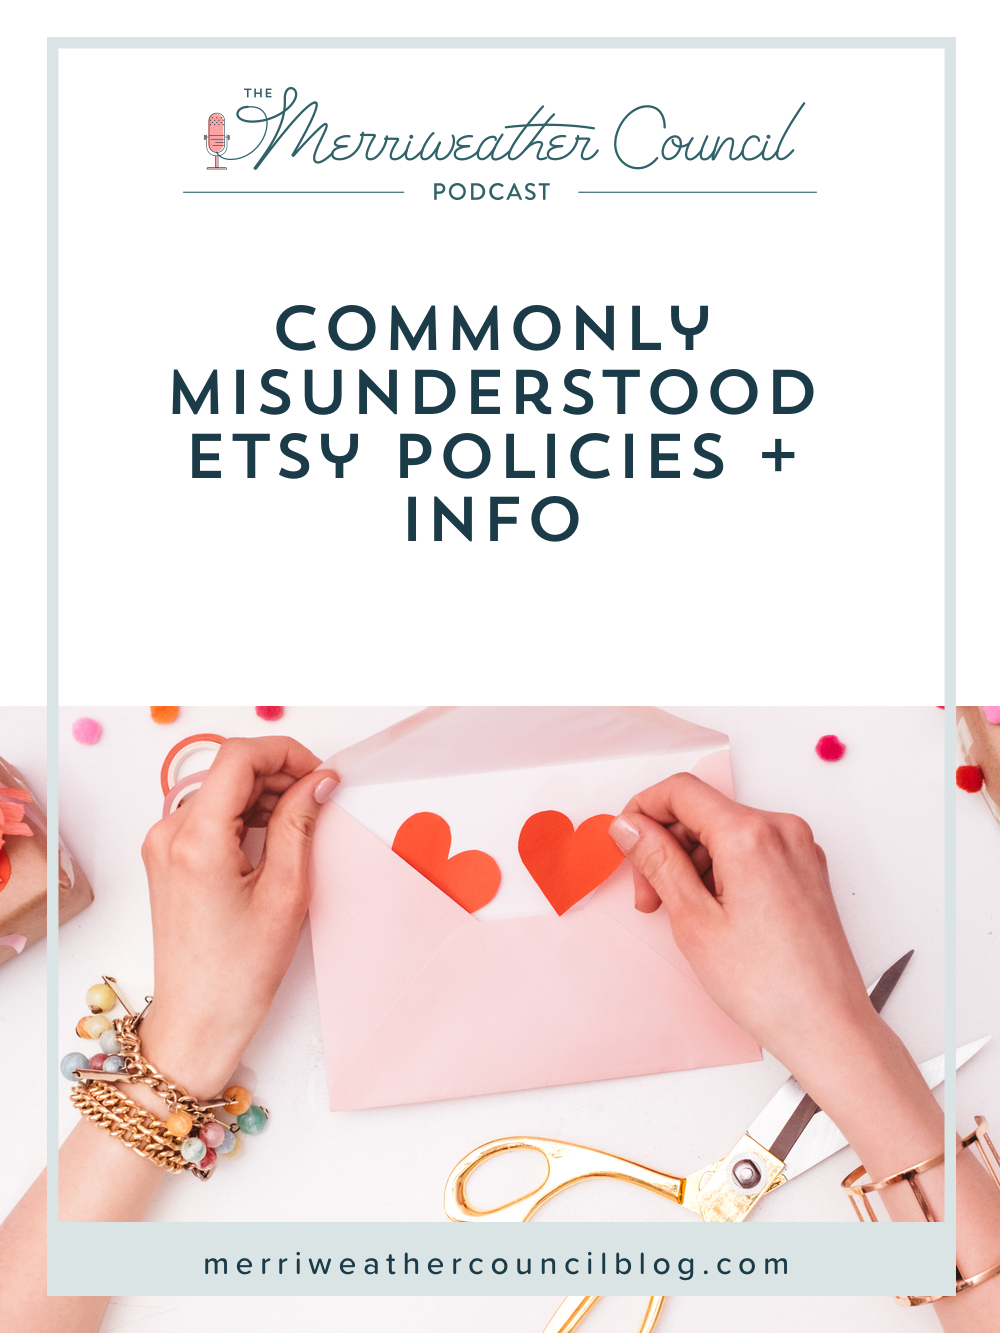 Commonly Misunderstood Etsy Policies + Info | The Merriweather Council